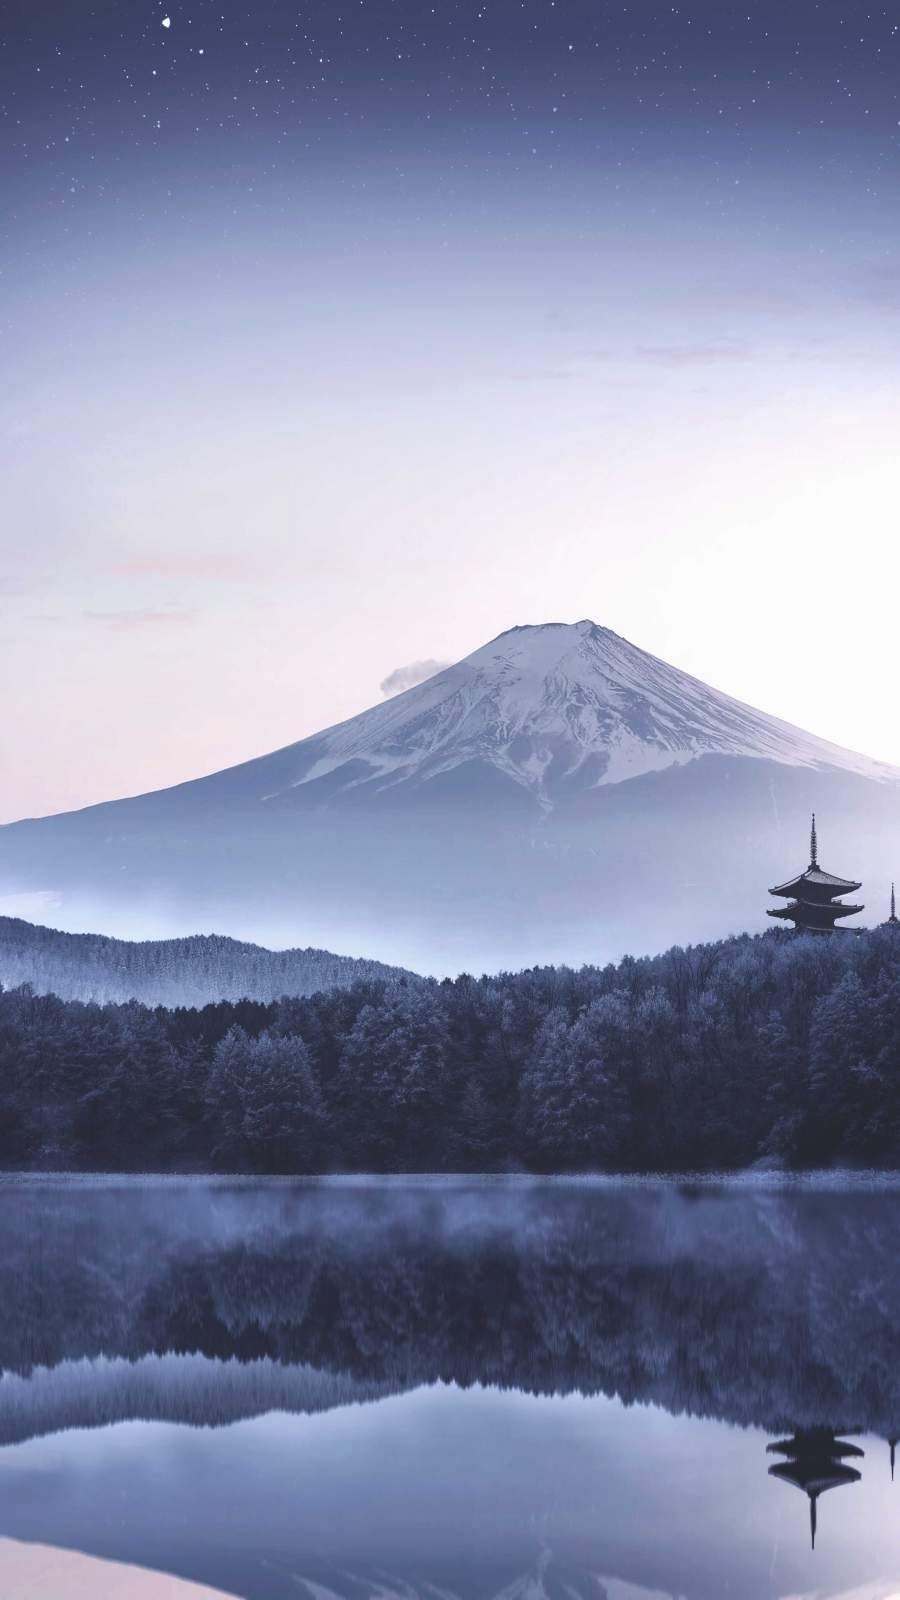 Japan Mount Fuji Morning Iphone Wallpaper In 2020 Iphone Wallpaper Japan Blue Wallpaper Iphone Cool Wallpapers For Phones